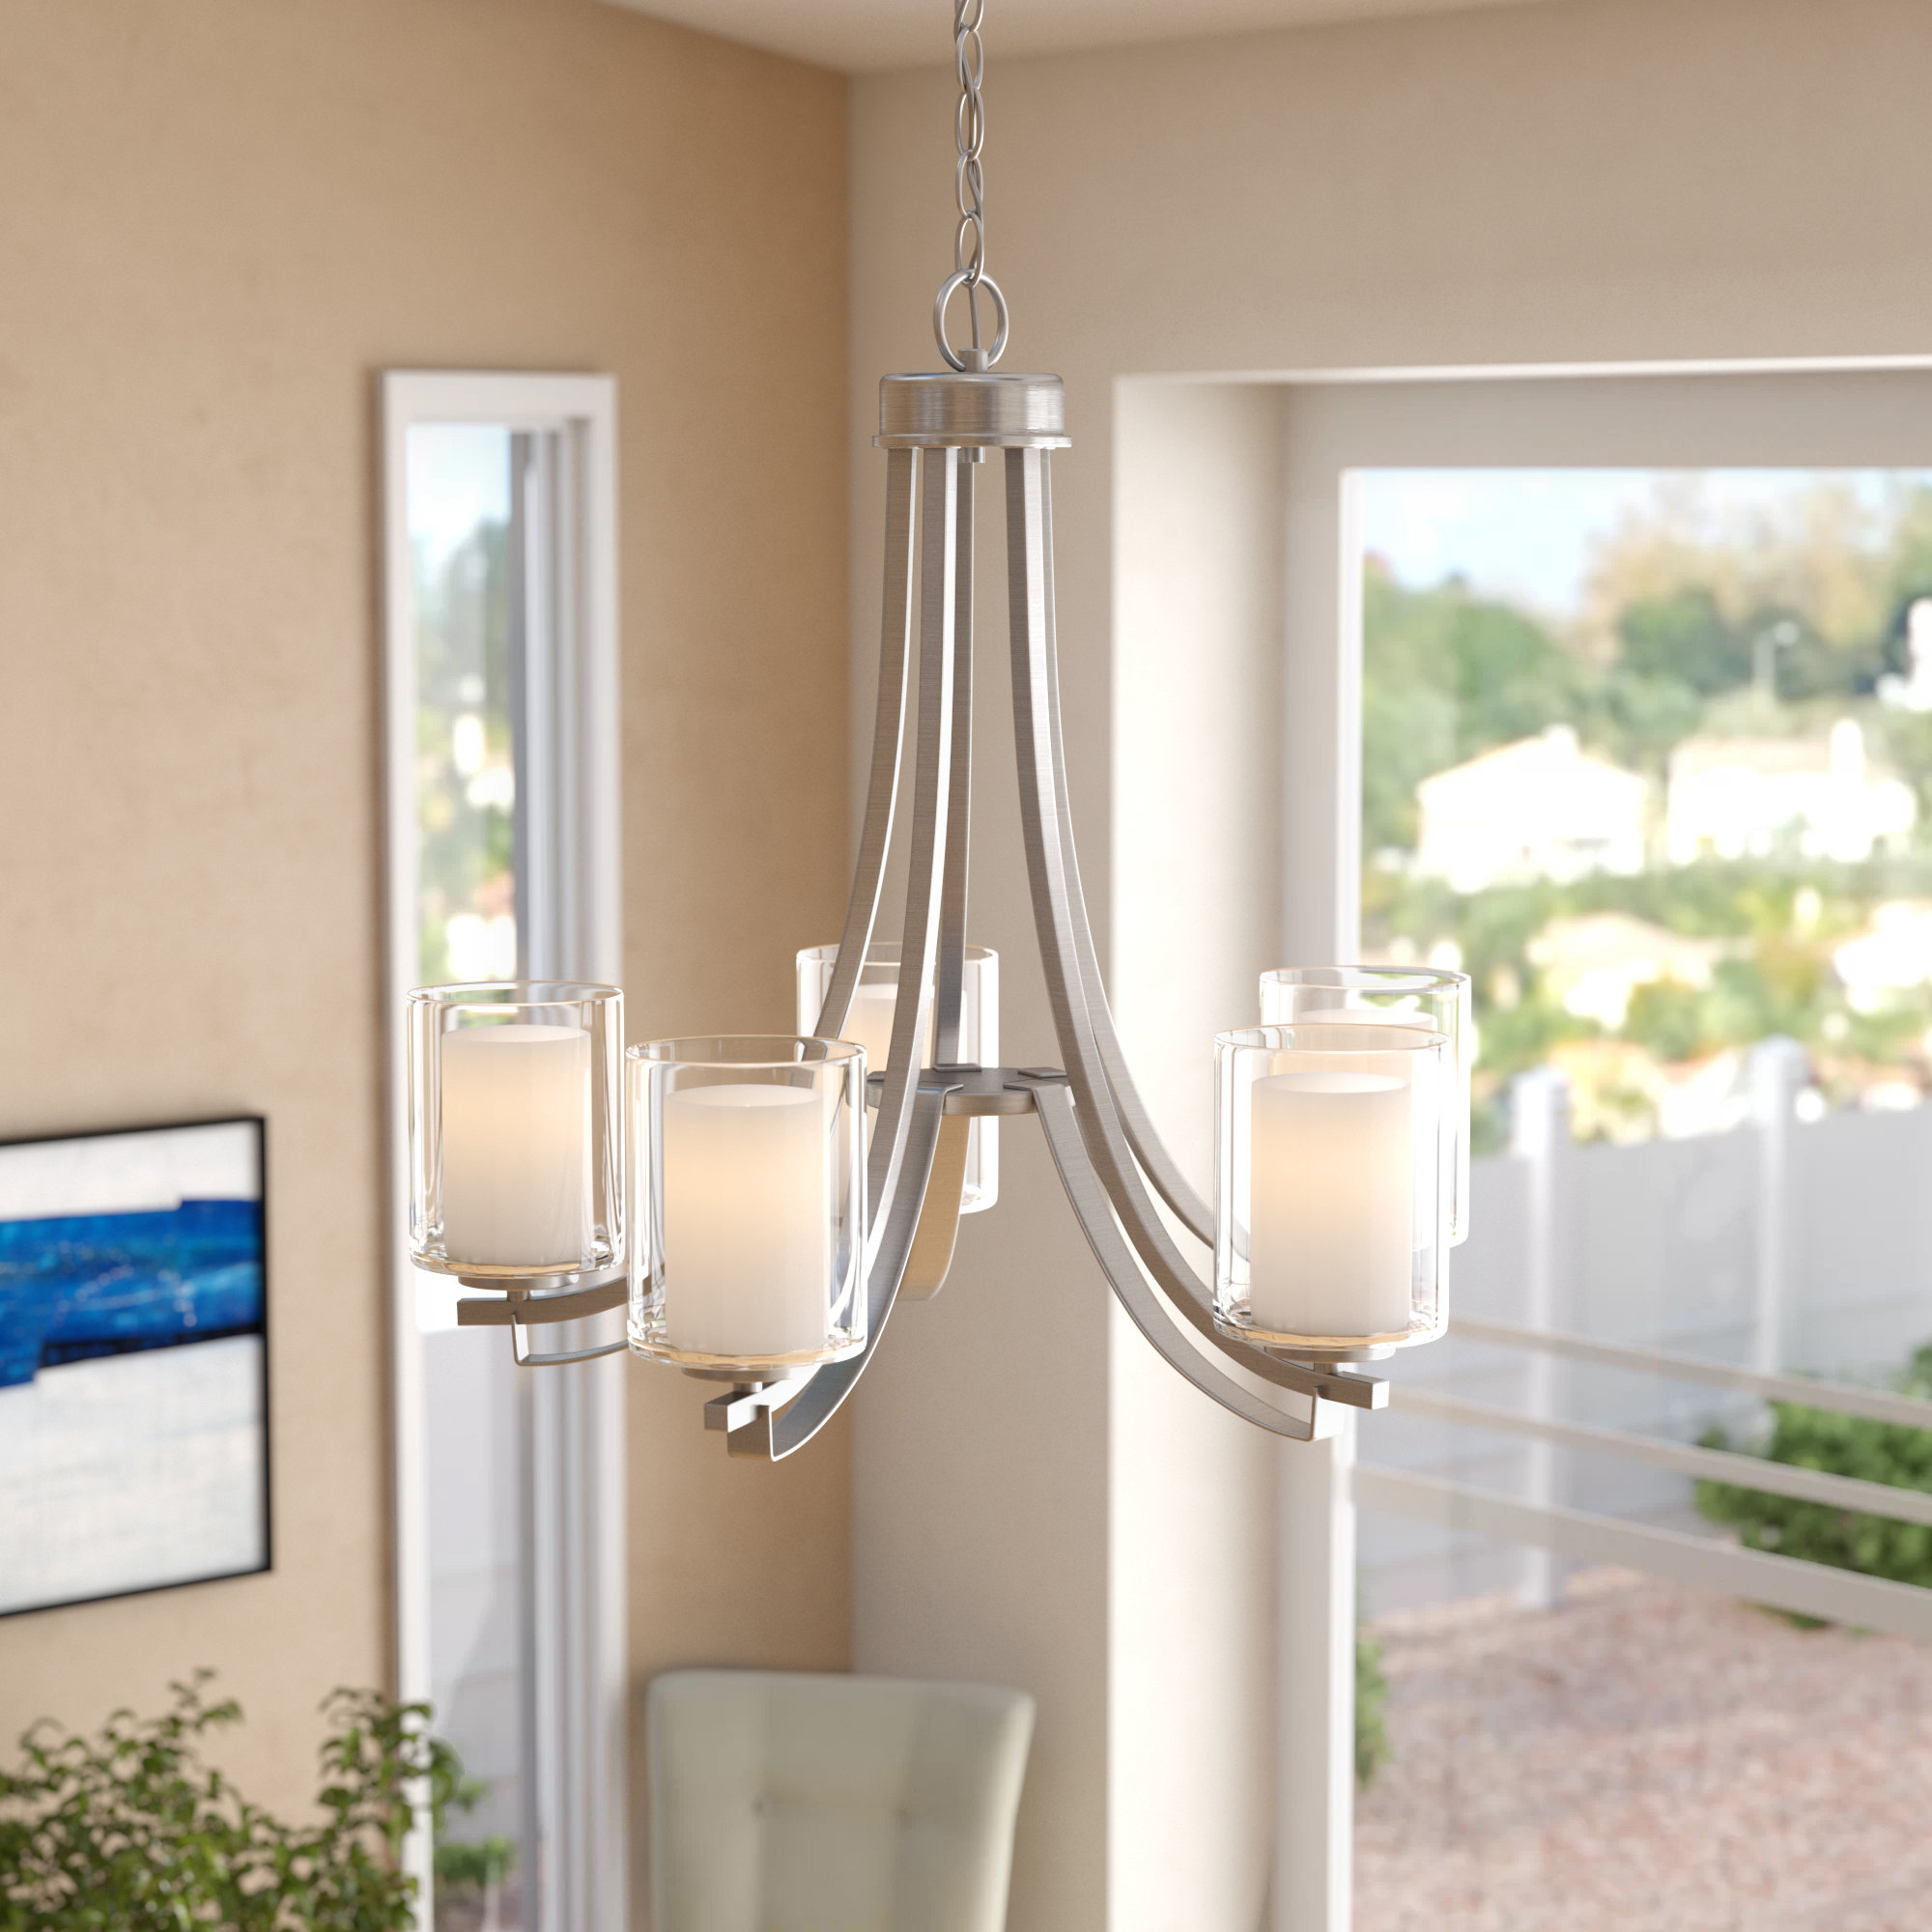 Suki 5 Light Shaded Chandelier | Wayfair Pertaining To Suki 5 Light Shaded Chandeliers (View 18 of 30)